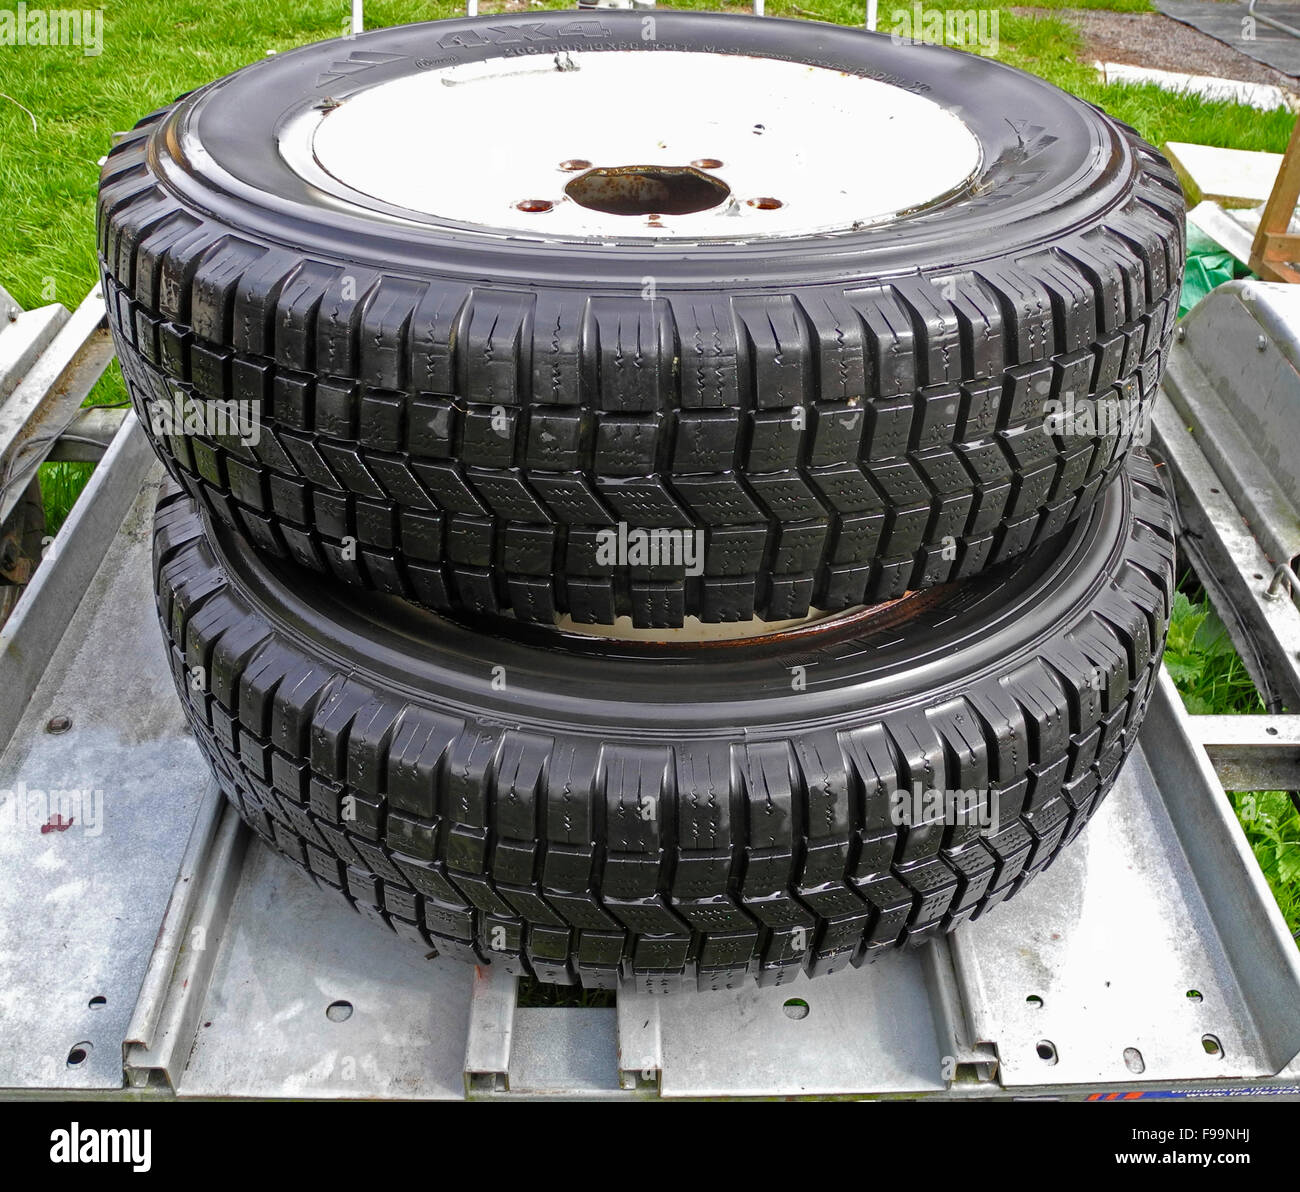 Land Rover 4wdr 4 wheel drive tires tyres - Stock Image